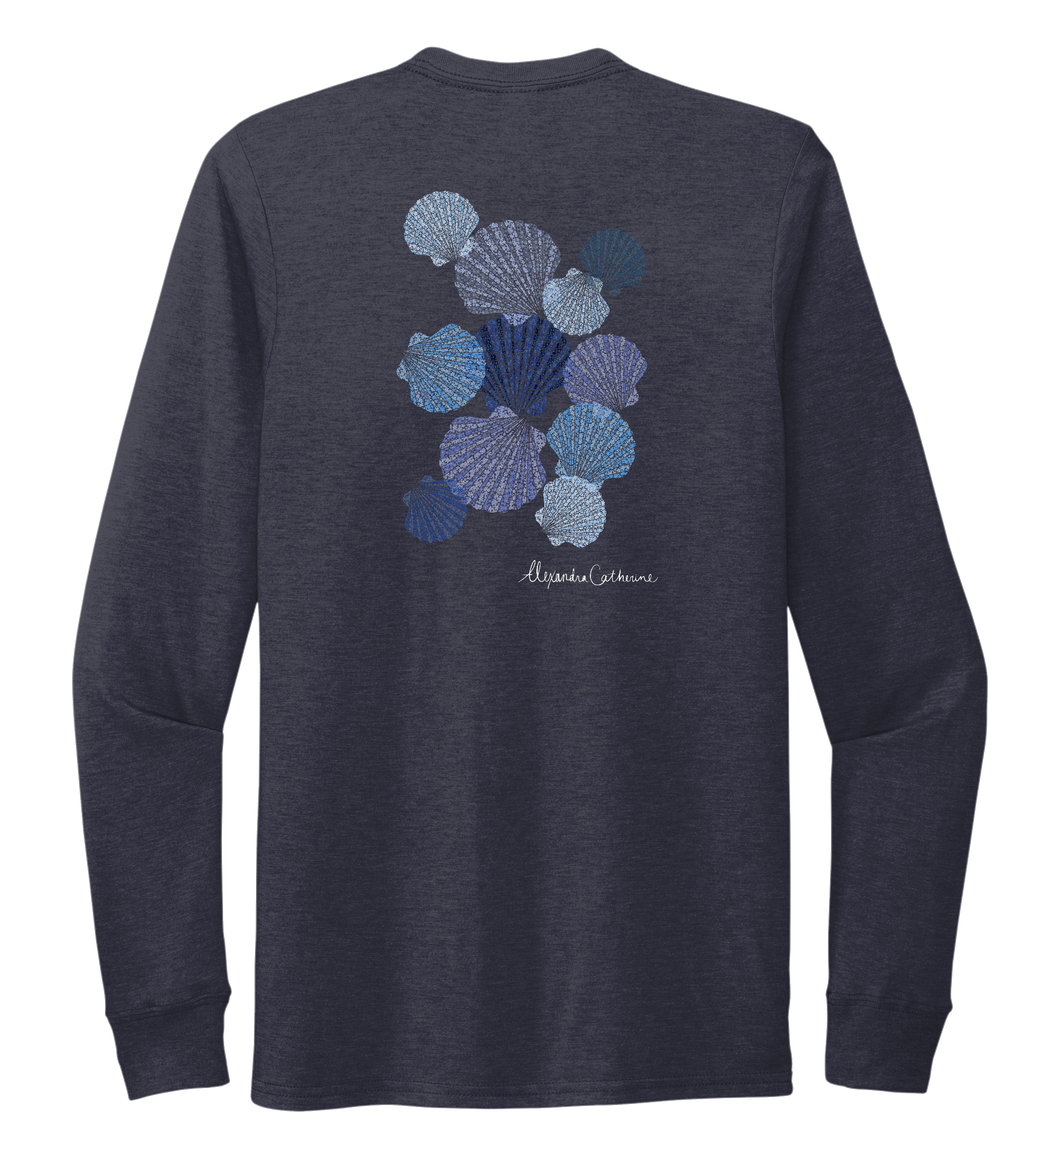 Alexandra Catherine, Tossed Seashells, Unisex Crew Neck Long Sleeve T-shirt in Deep Sea Blue